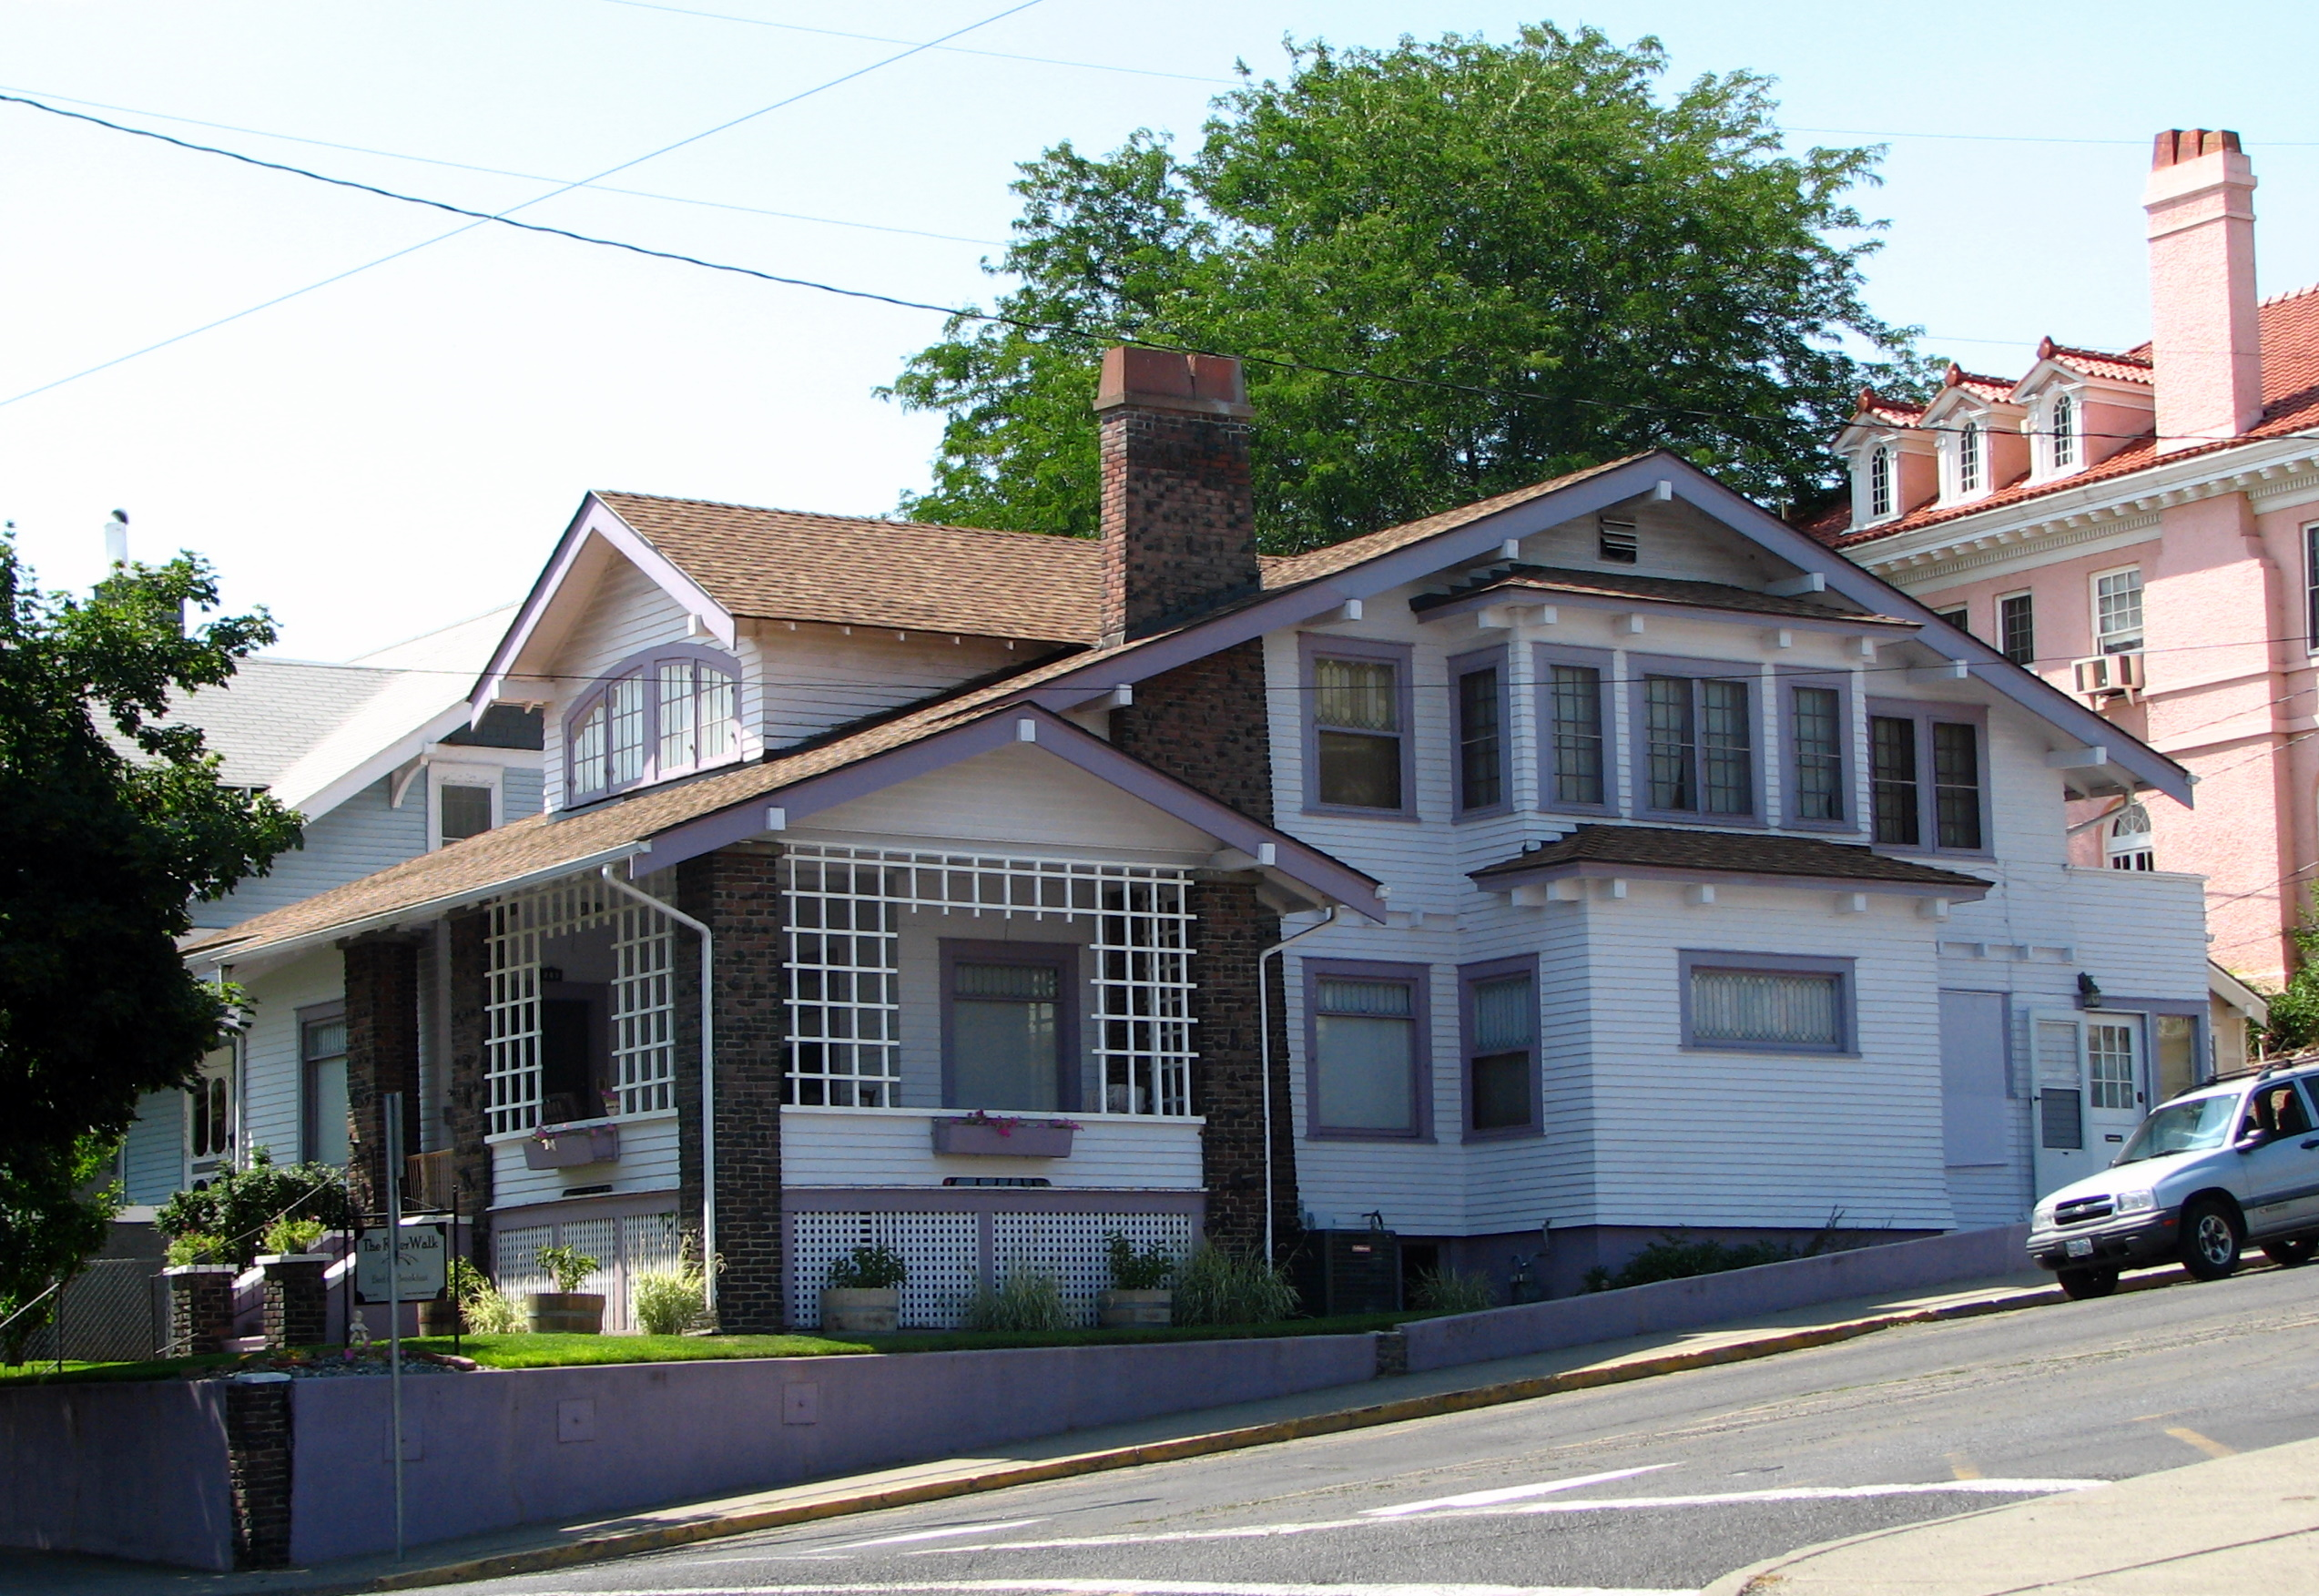 national register of historic places listings in umatilla